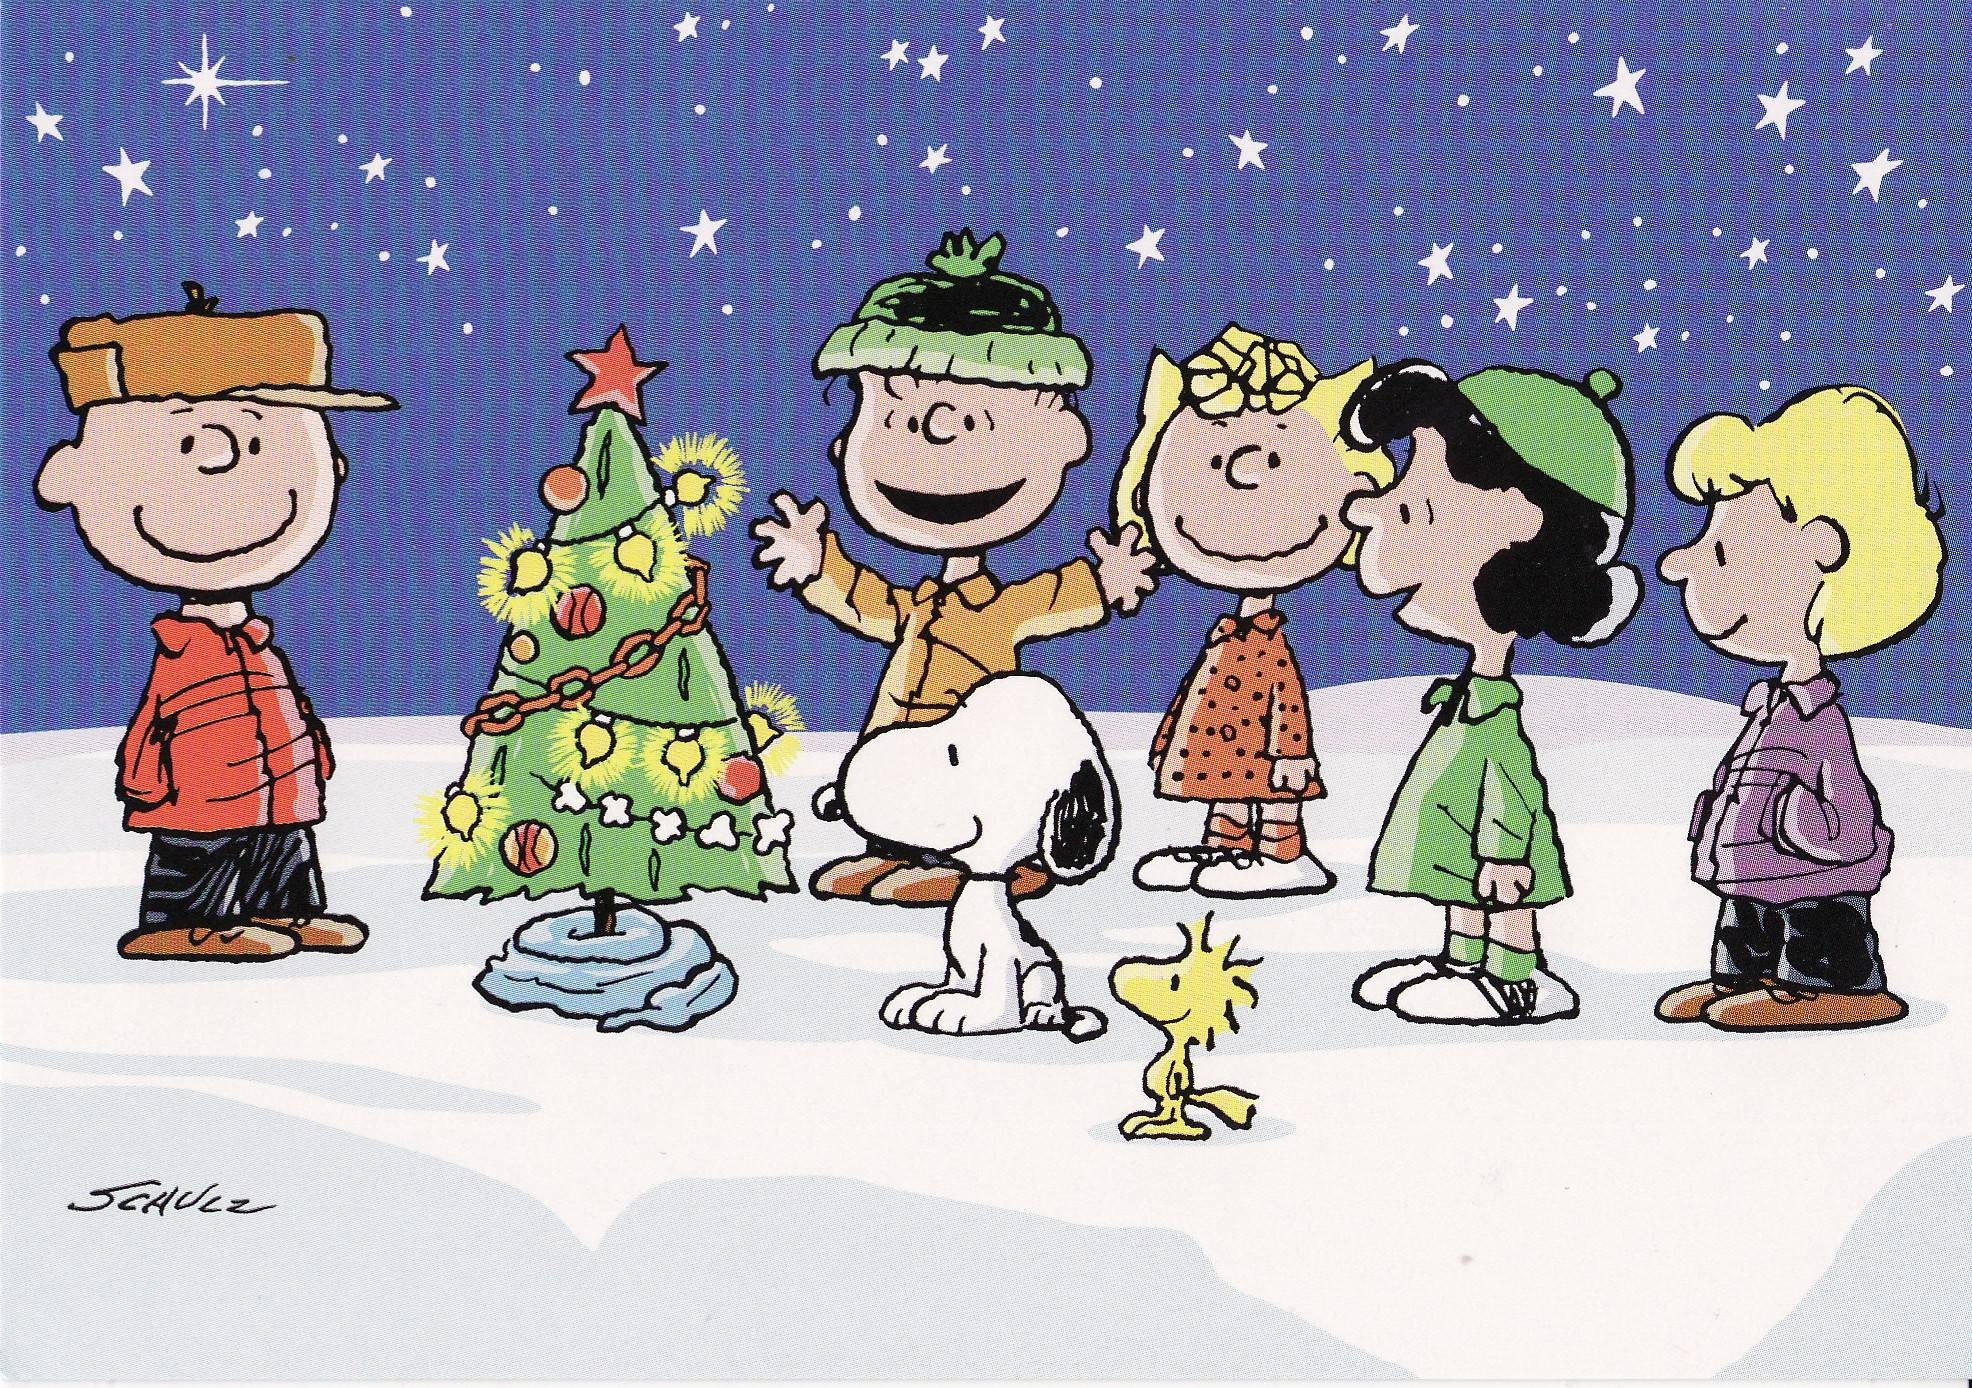 charlie brown christmas wallpaper - Charlie Browns Christmas